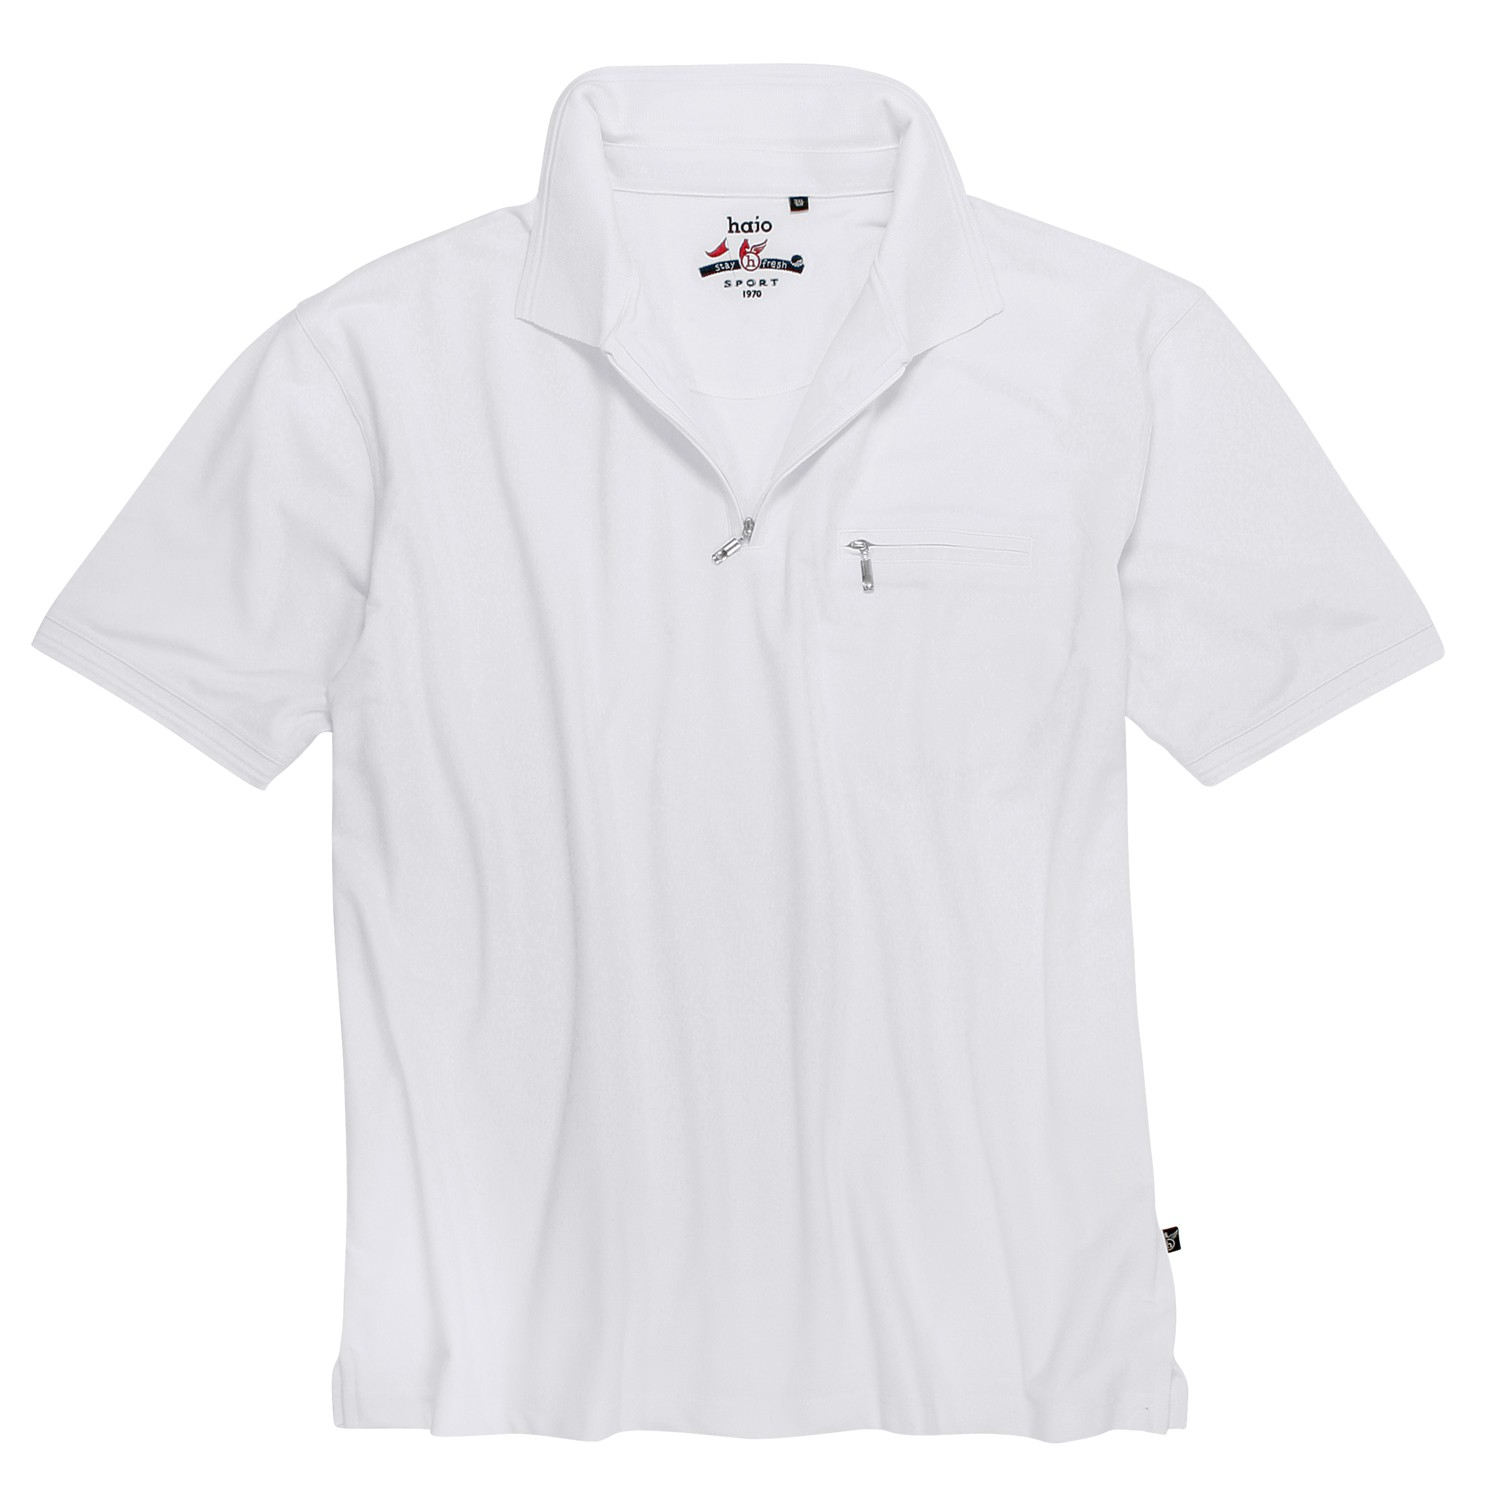 """Detail Image to Polo shirt """"Stay Fresh"""" in white by hajo in oversizes up to 6XL"""